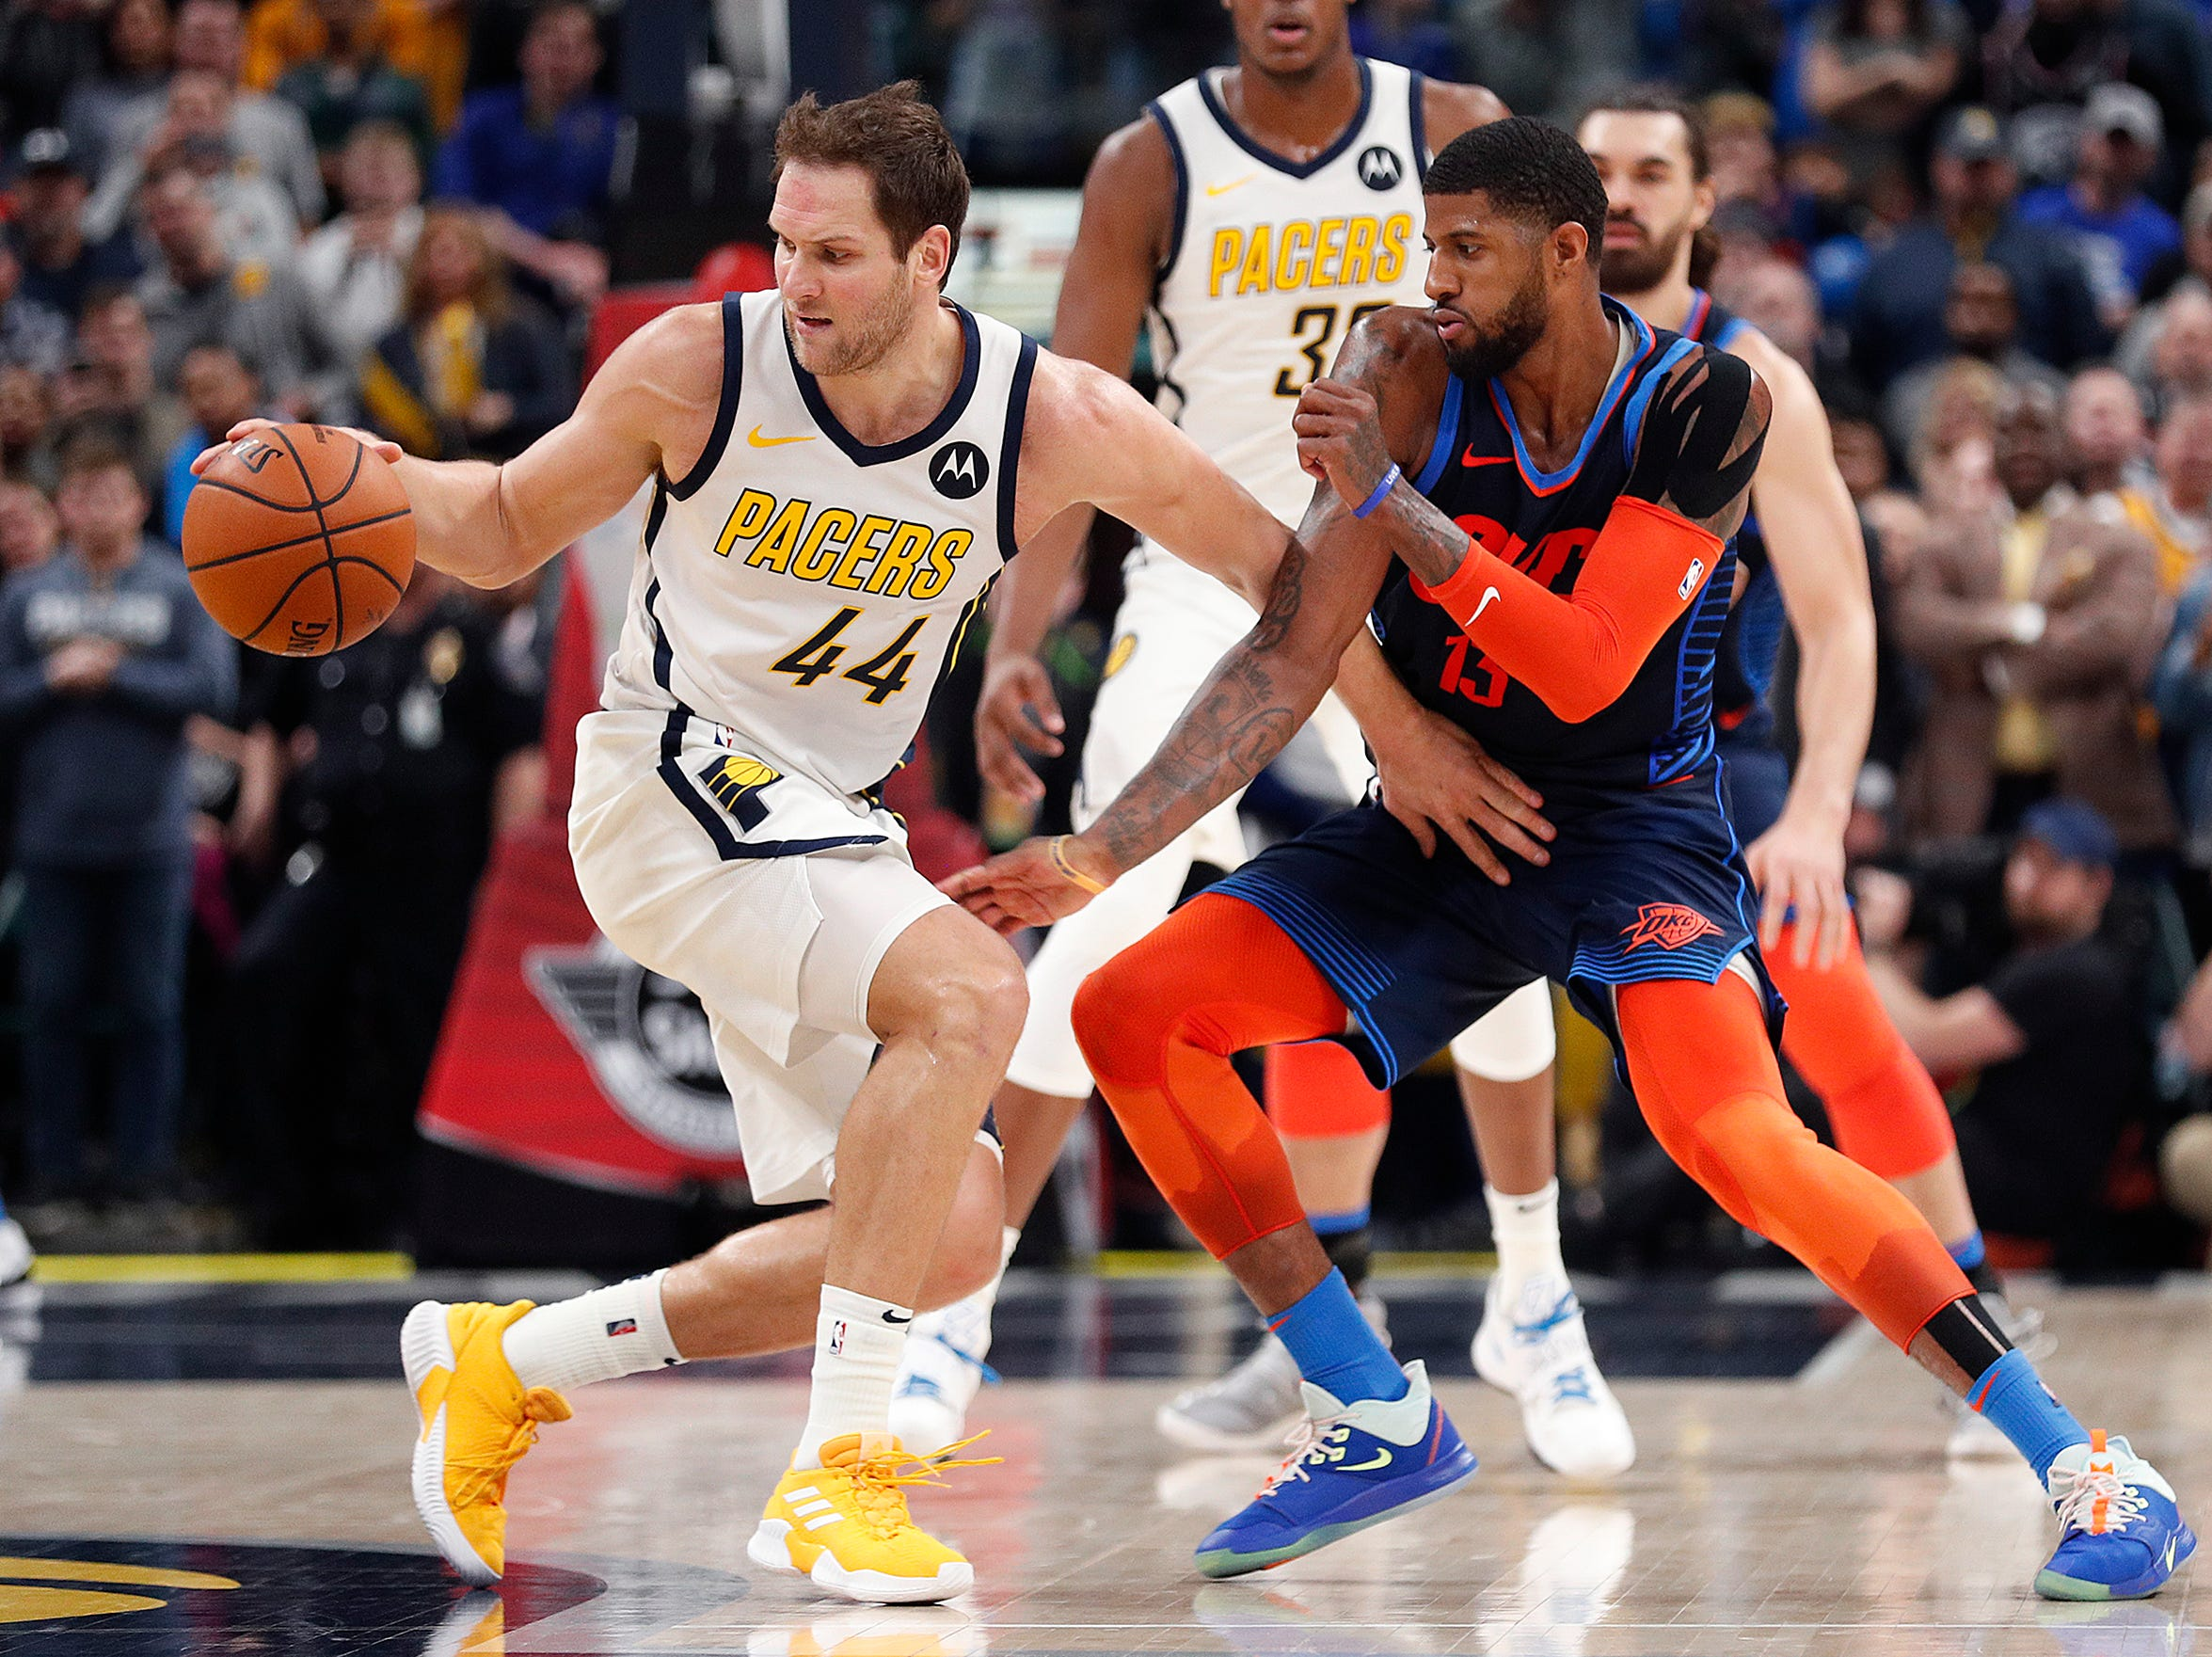 Indiana Pacers forward Bojan Bogdanovic (44) spins around Oklahoma City Thunder forward Paul George (13) in the final second of the fourth quarter of their game at Bankers Life Fieldhouse on Thursday, Mar. 14, 2019. The Pacers defeated the Thunder 108-106.